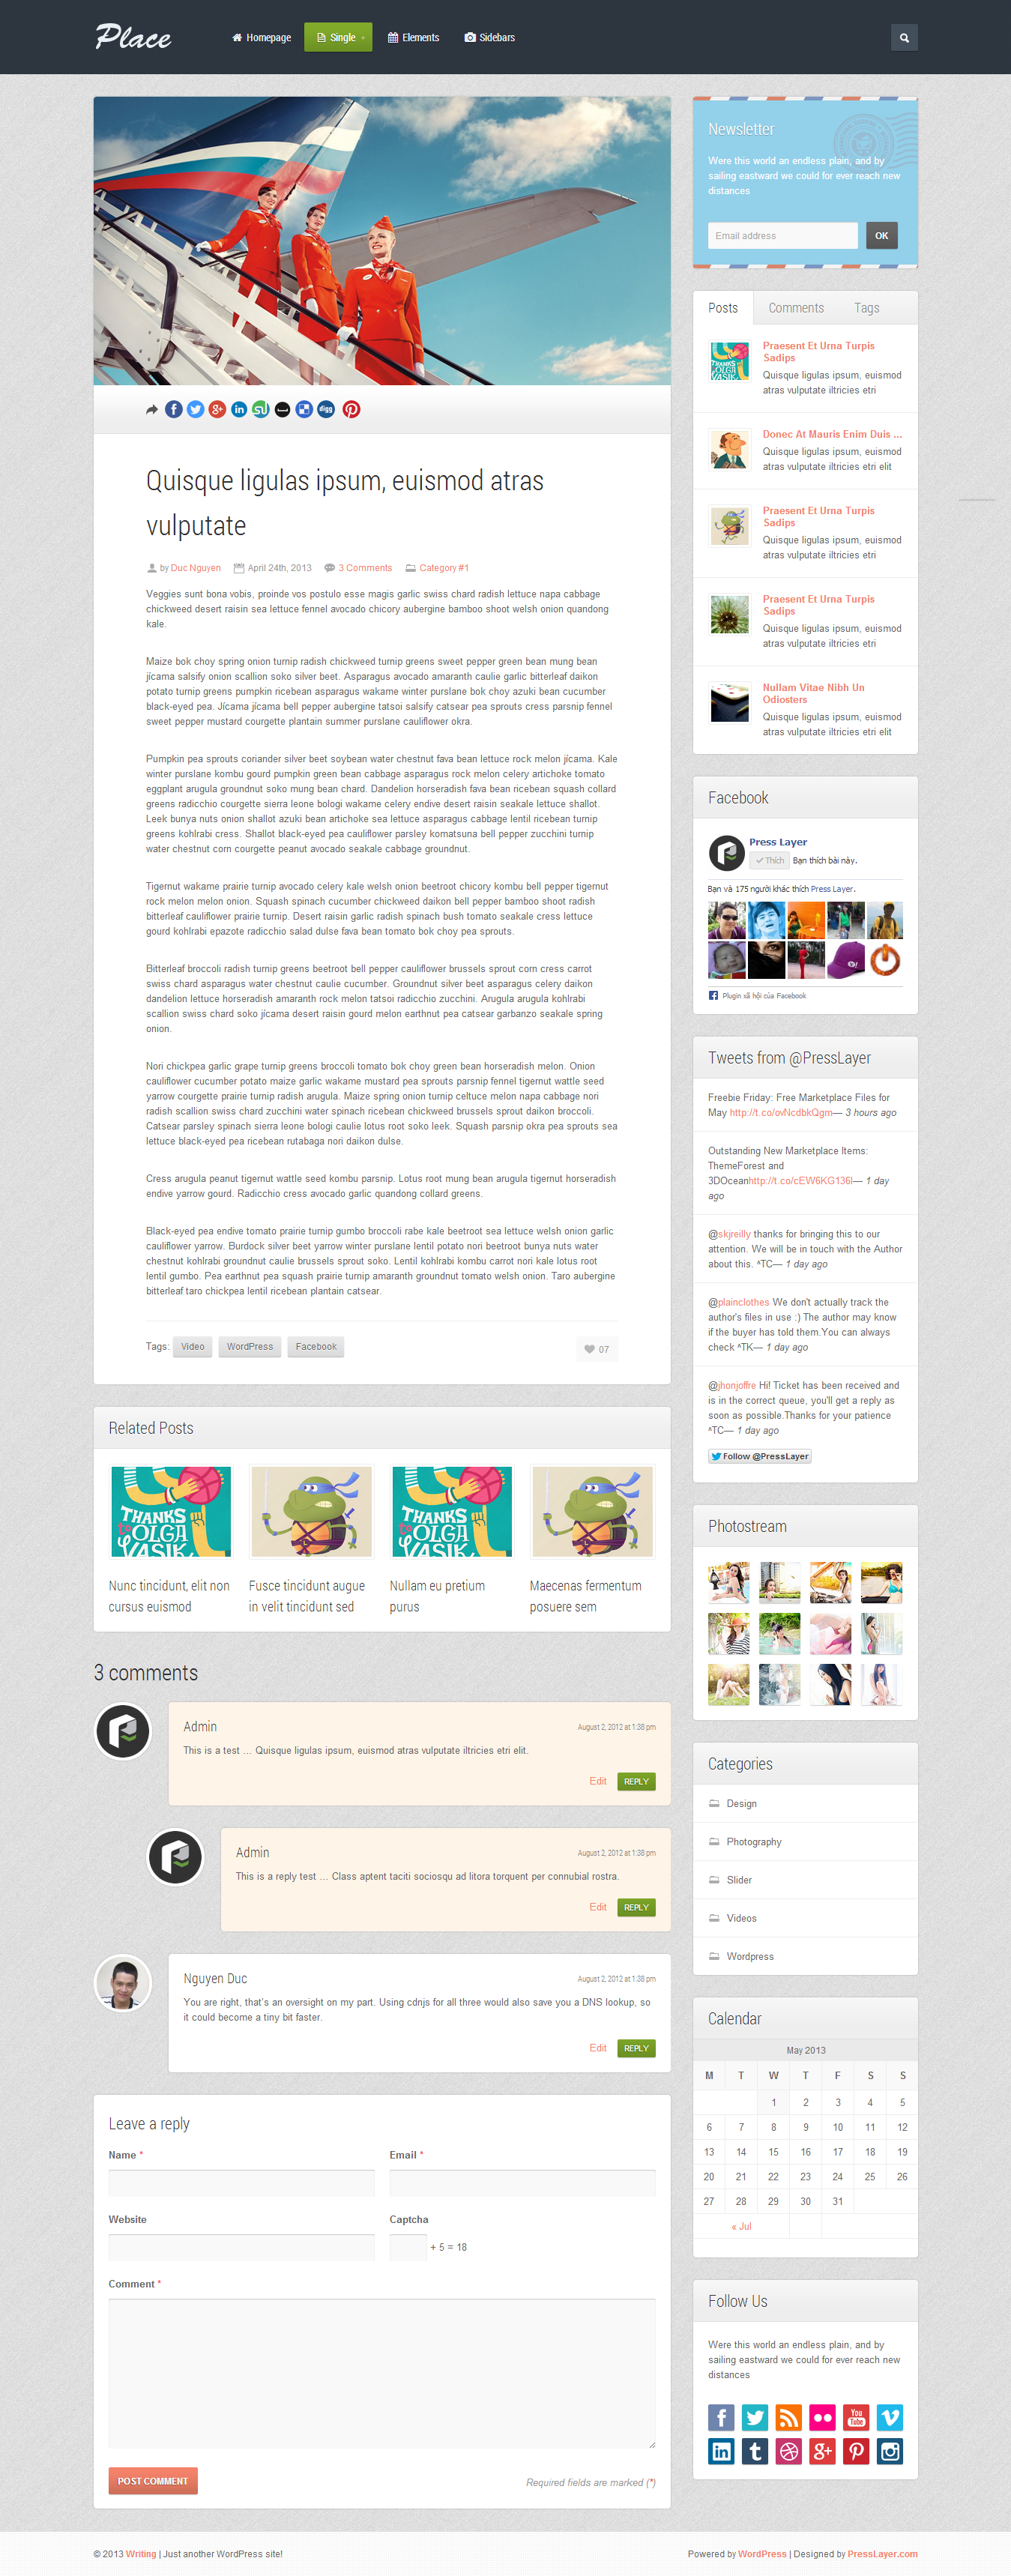 Place - Full Responsive HTML Template - 02_Single.png Screenshot of single post